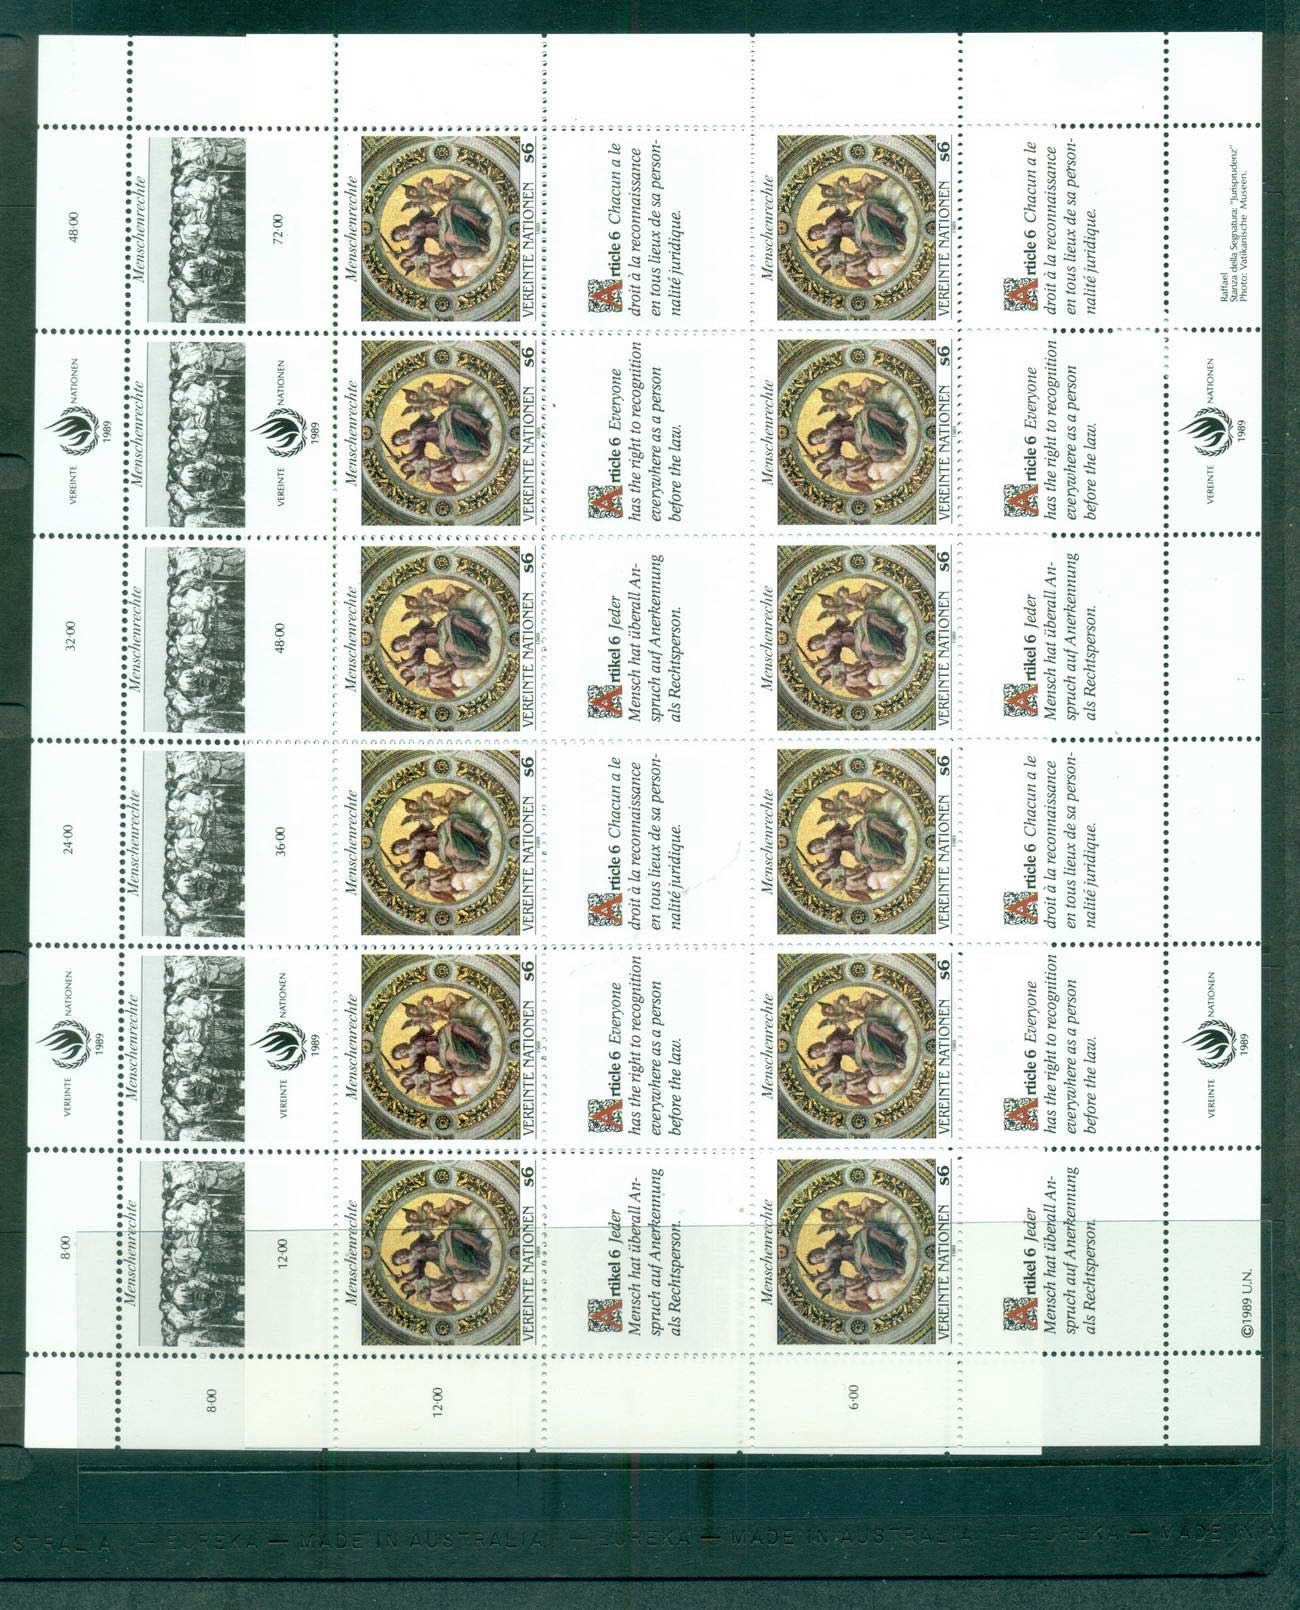 UN Vienna 1989 Human Rights 2x Sheets CTO lot66103